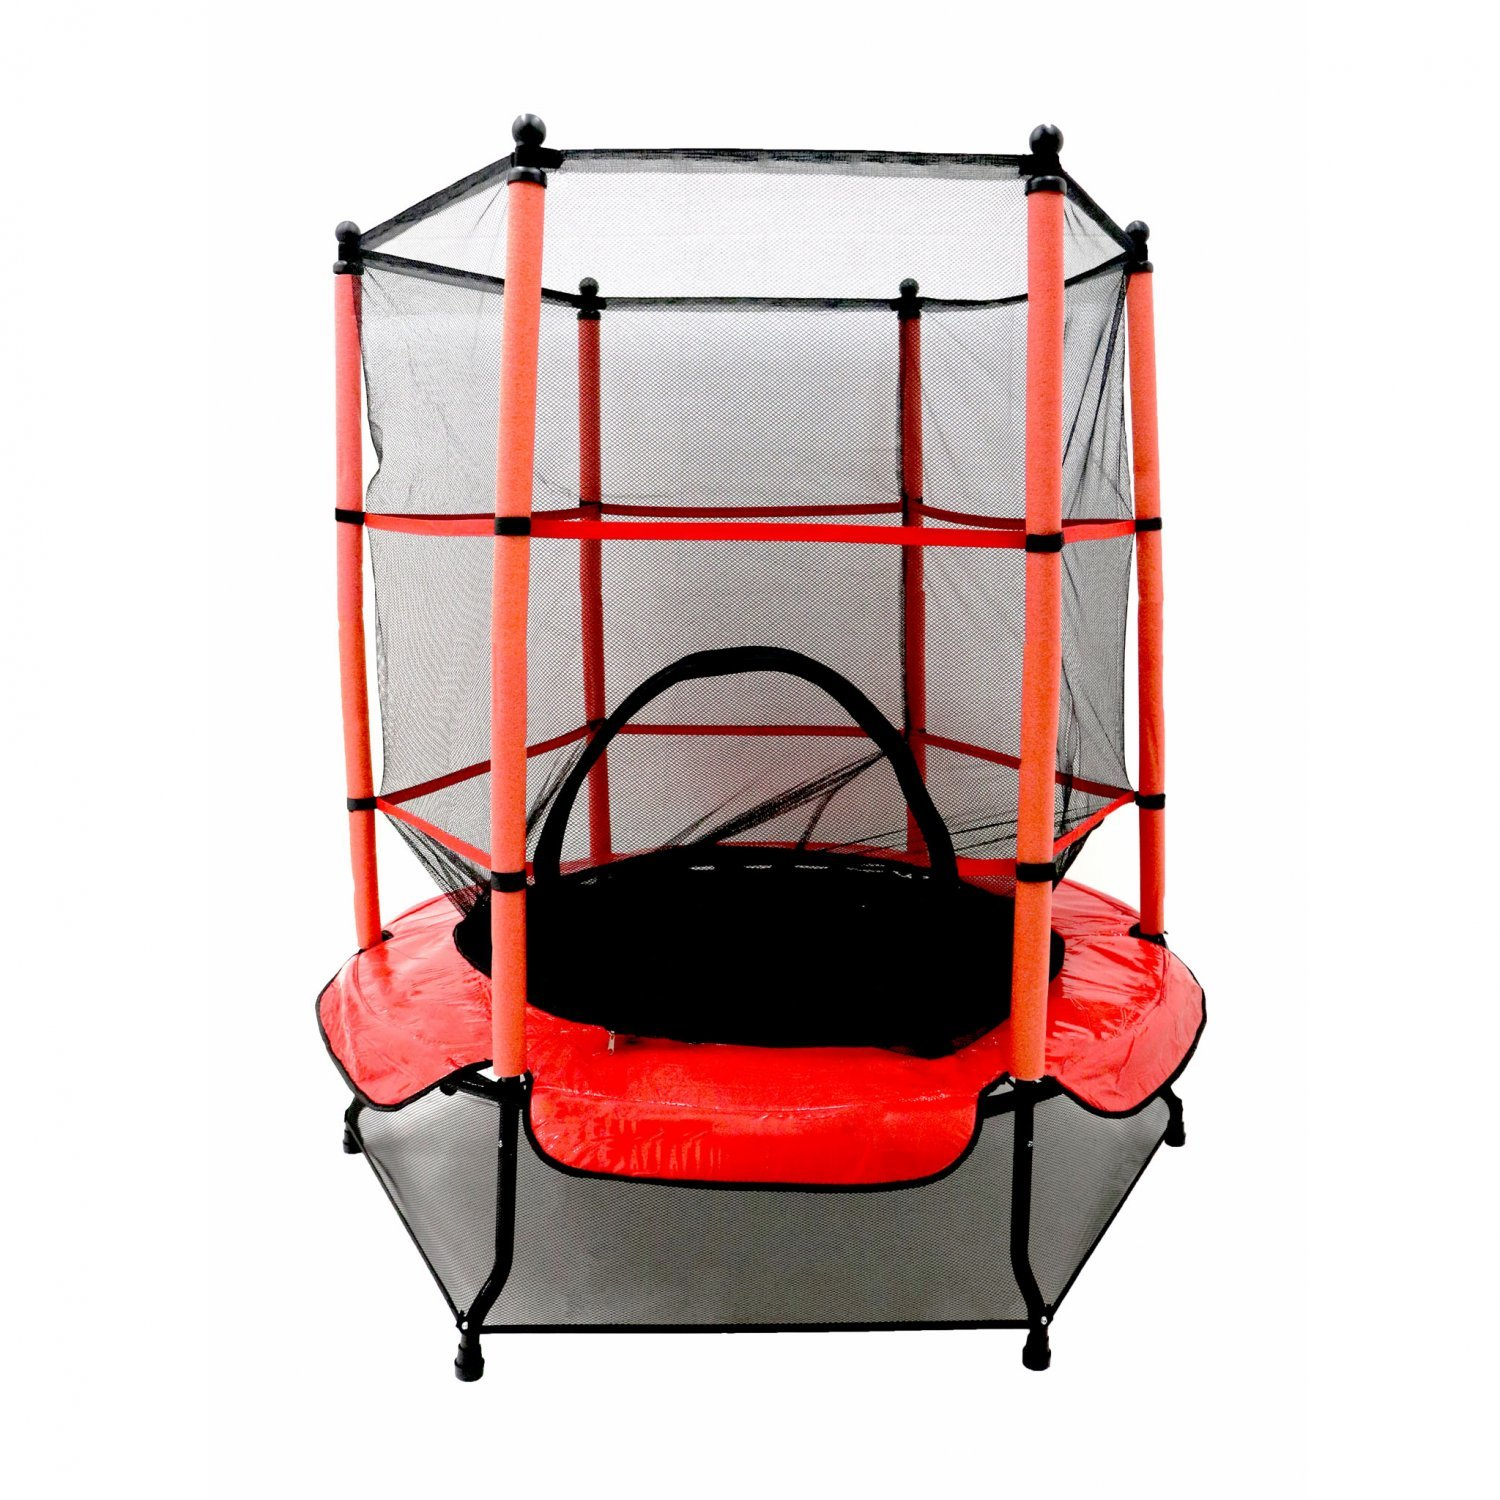 55 Kids Trampoline With Safety Net And Red Cover Garden